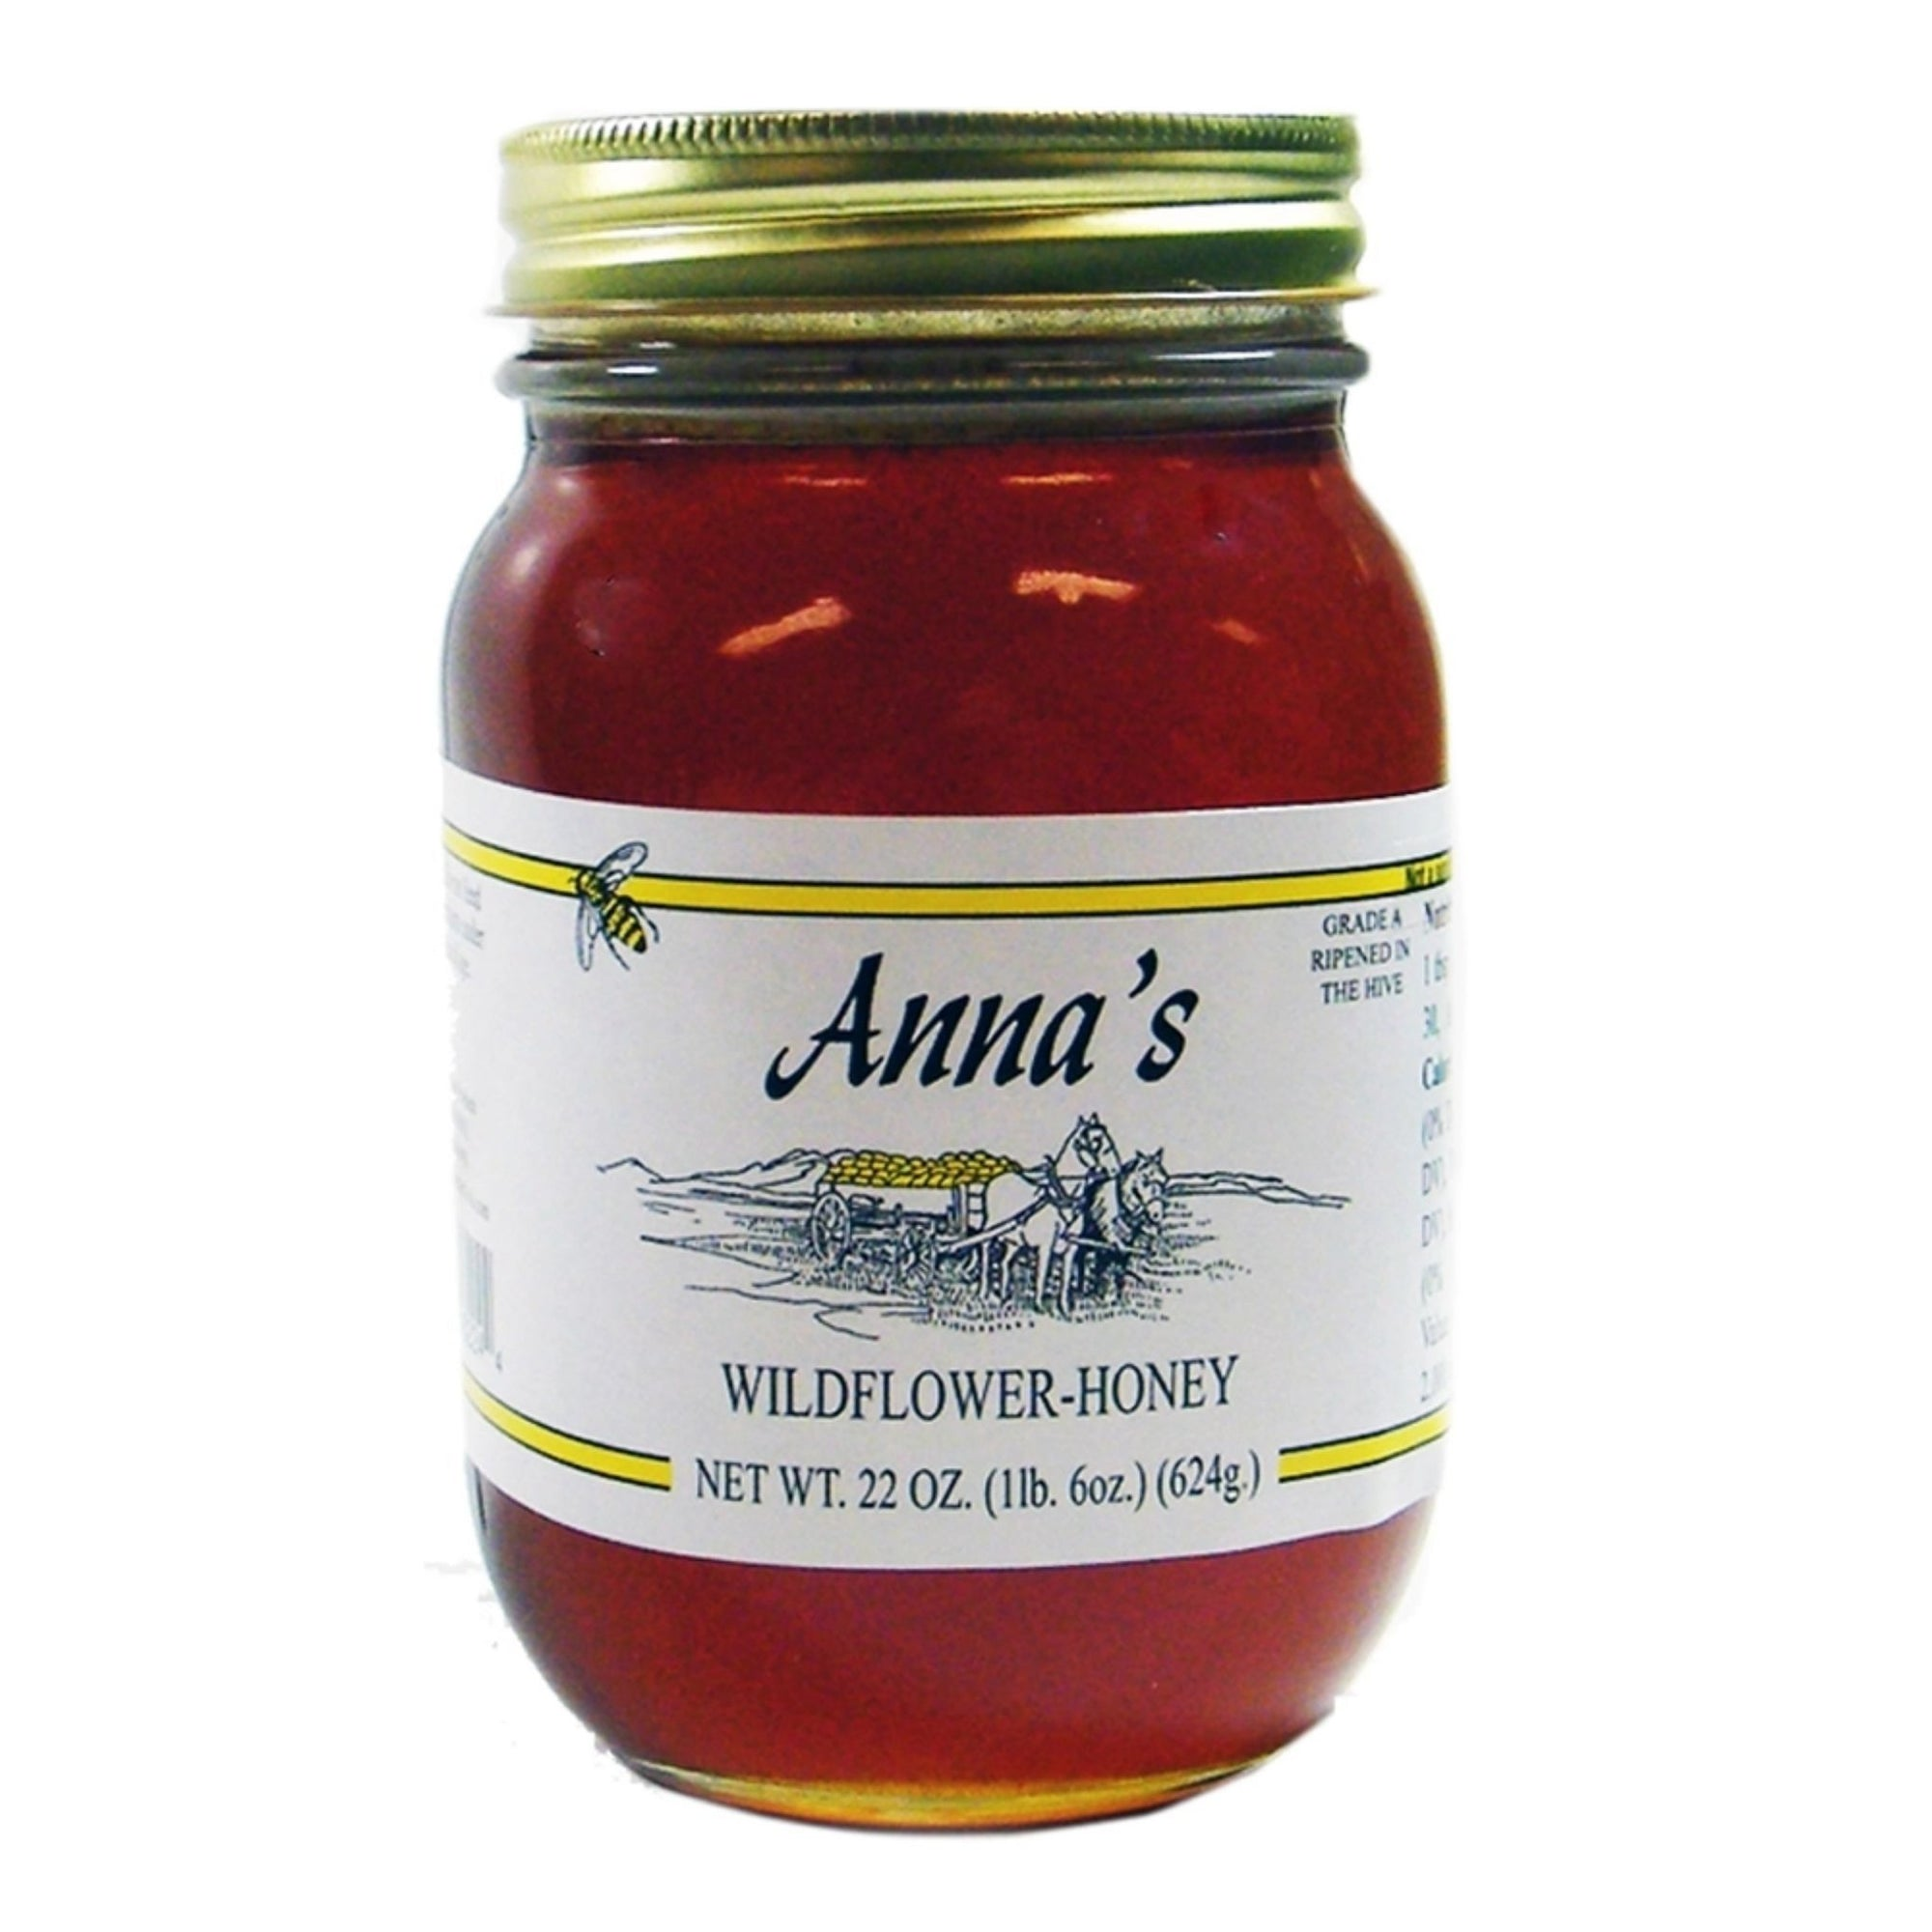 Anna's Wildflower Honey Harvested in the Pacific Northwest Since 1980 in a traditional 22-Ounce Mason Jar